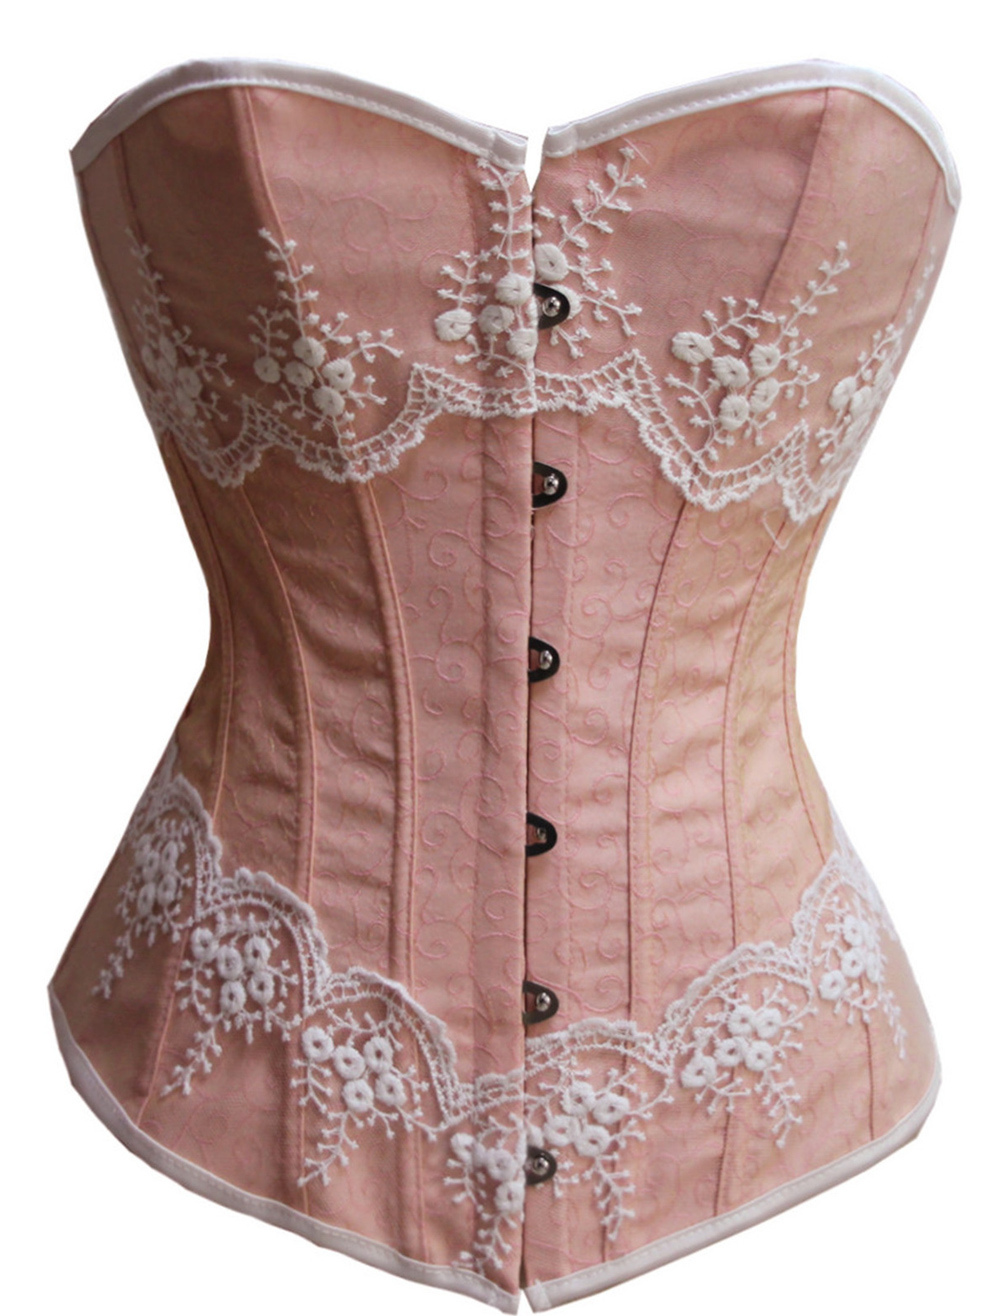 dbc8379996 Victorian Boned Corsets With Lace Trim - Milanoo.com